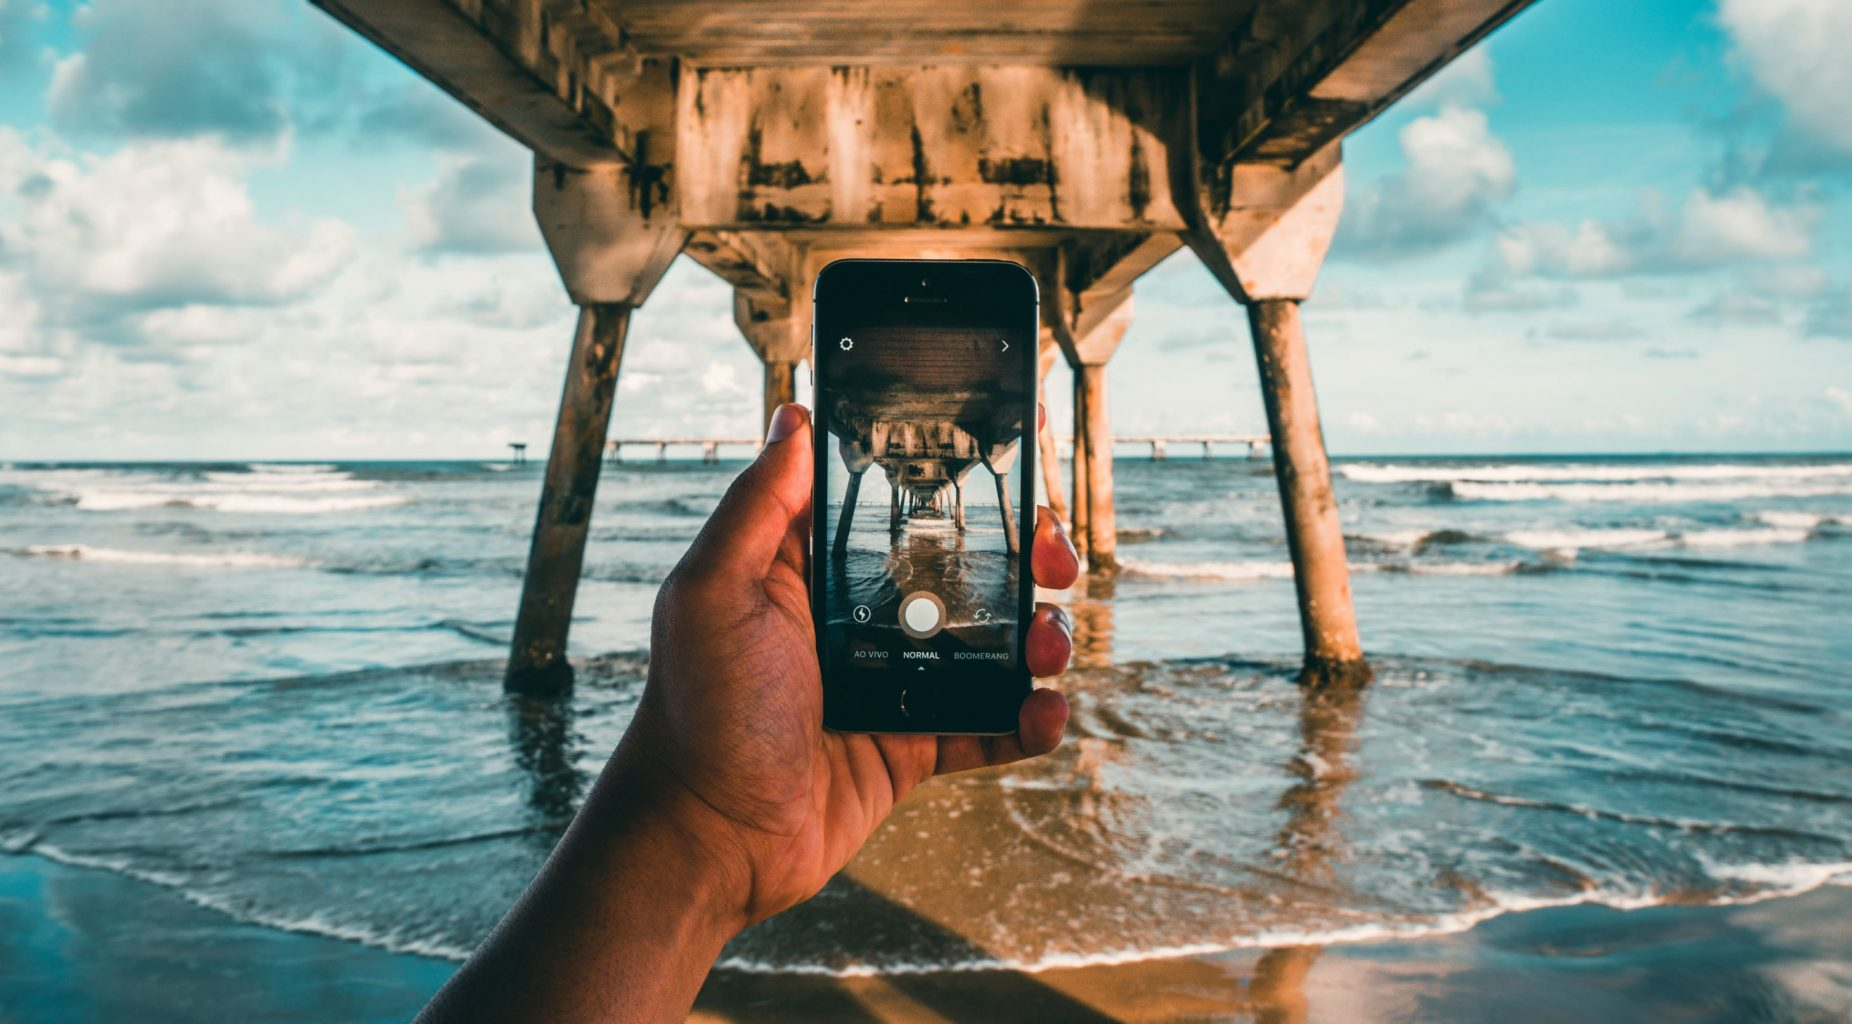 Image: An image within an image. A person taking a photo with an iphone